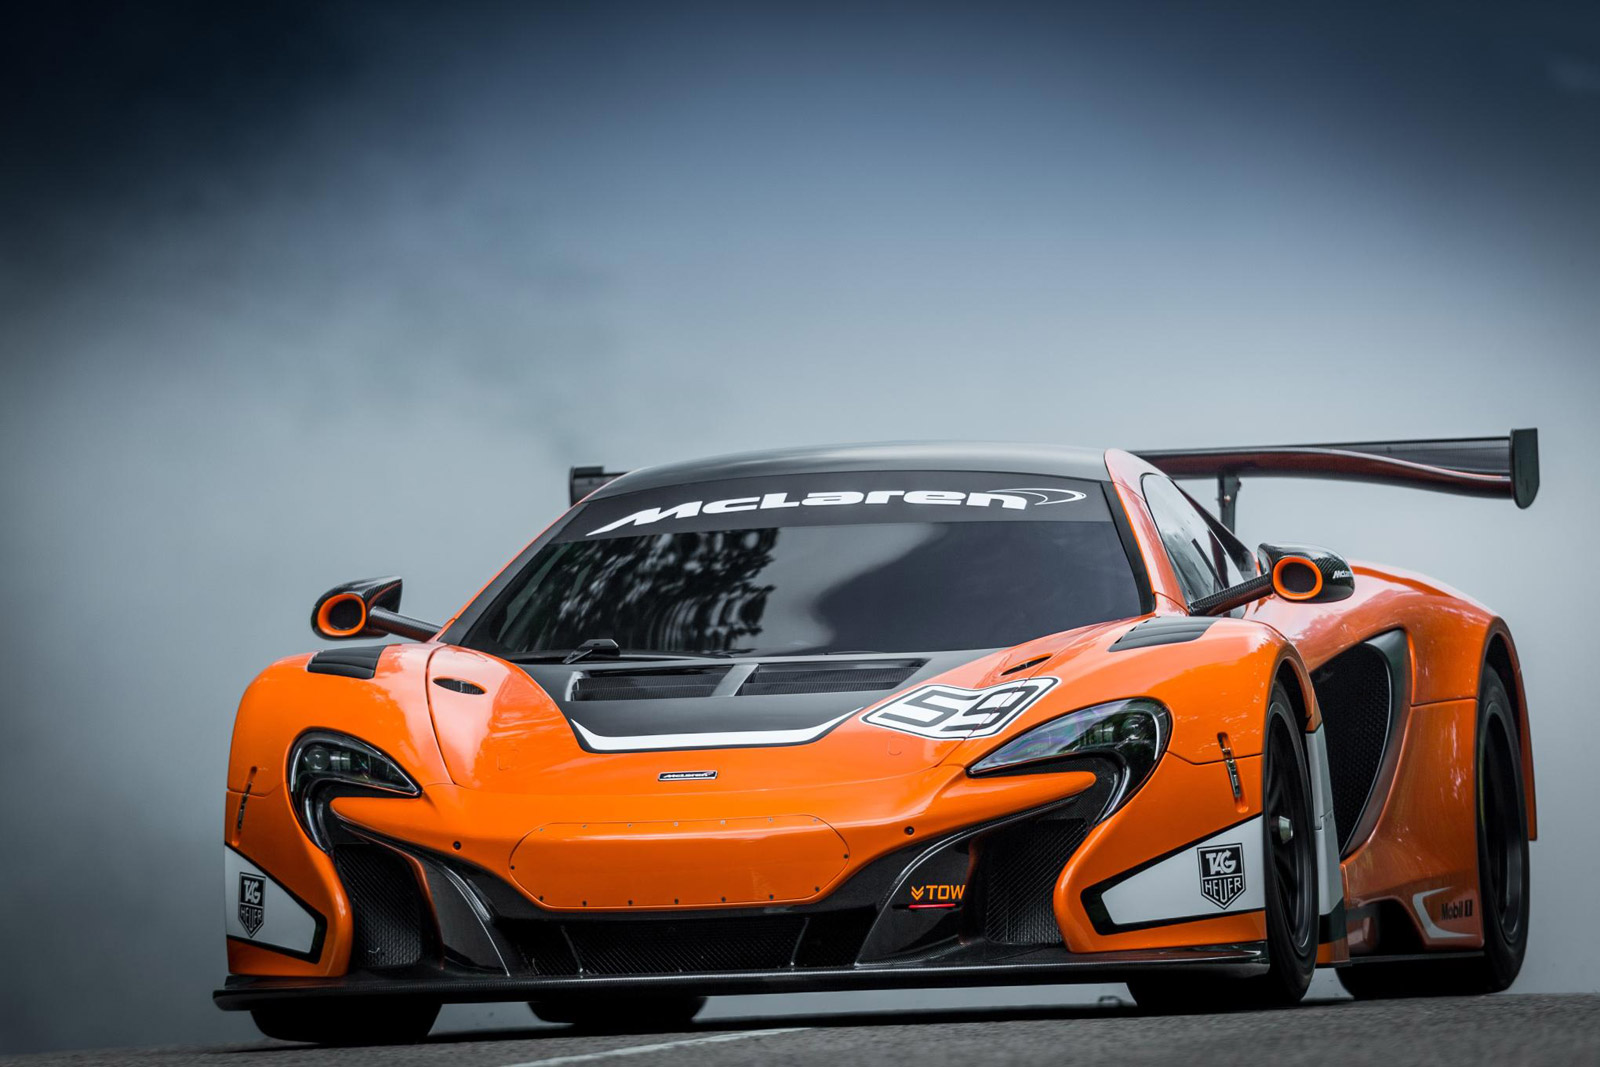 McLaren May Race At Le Mans In 2016 With 650S Racer